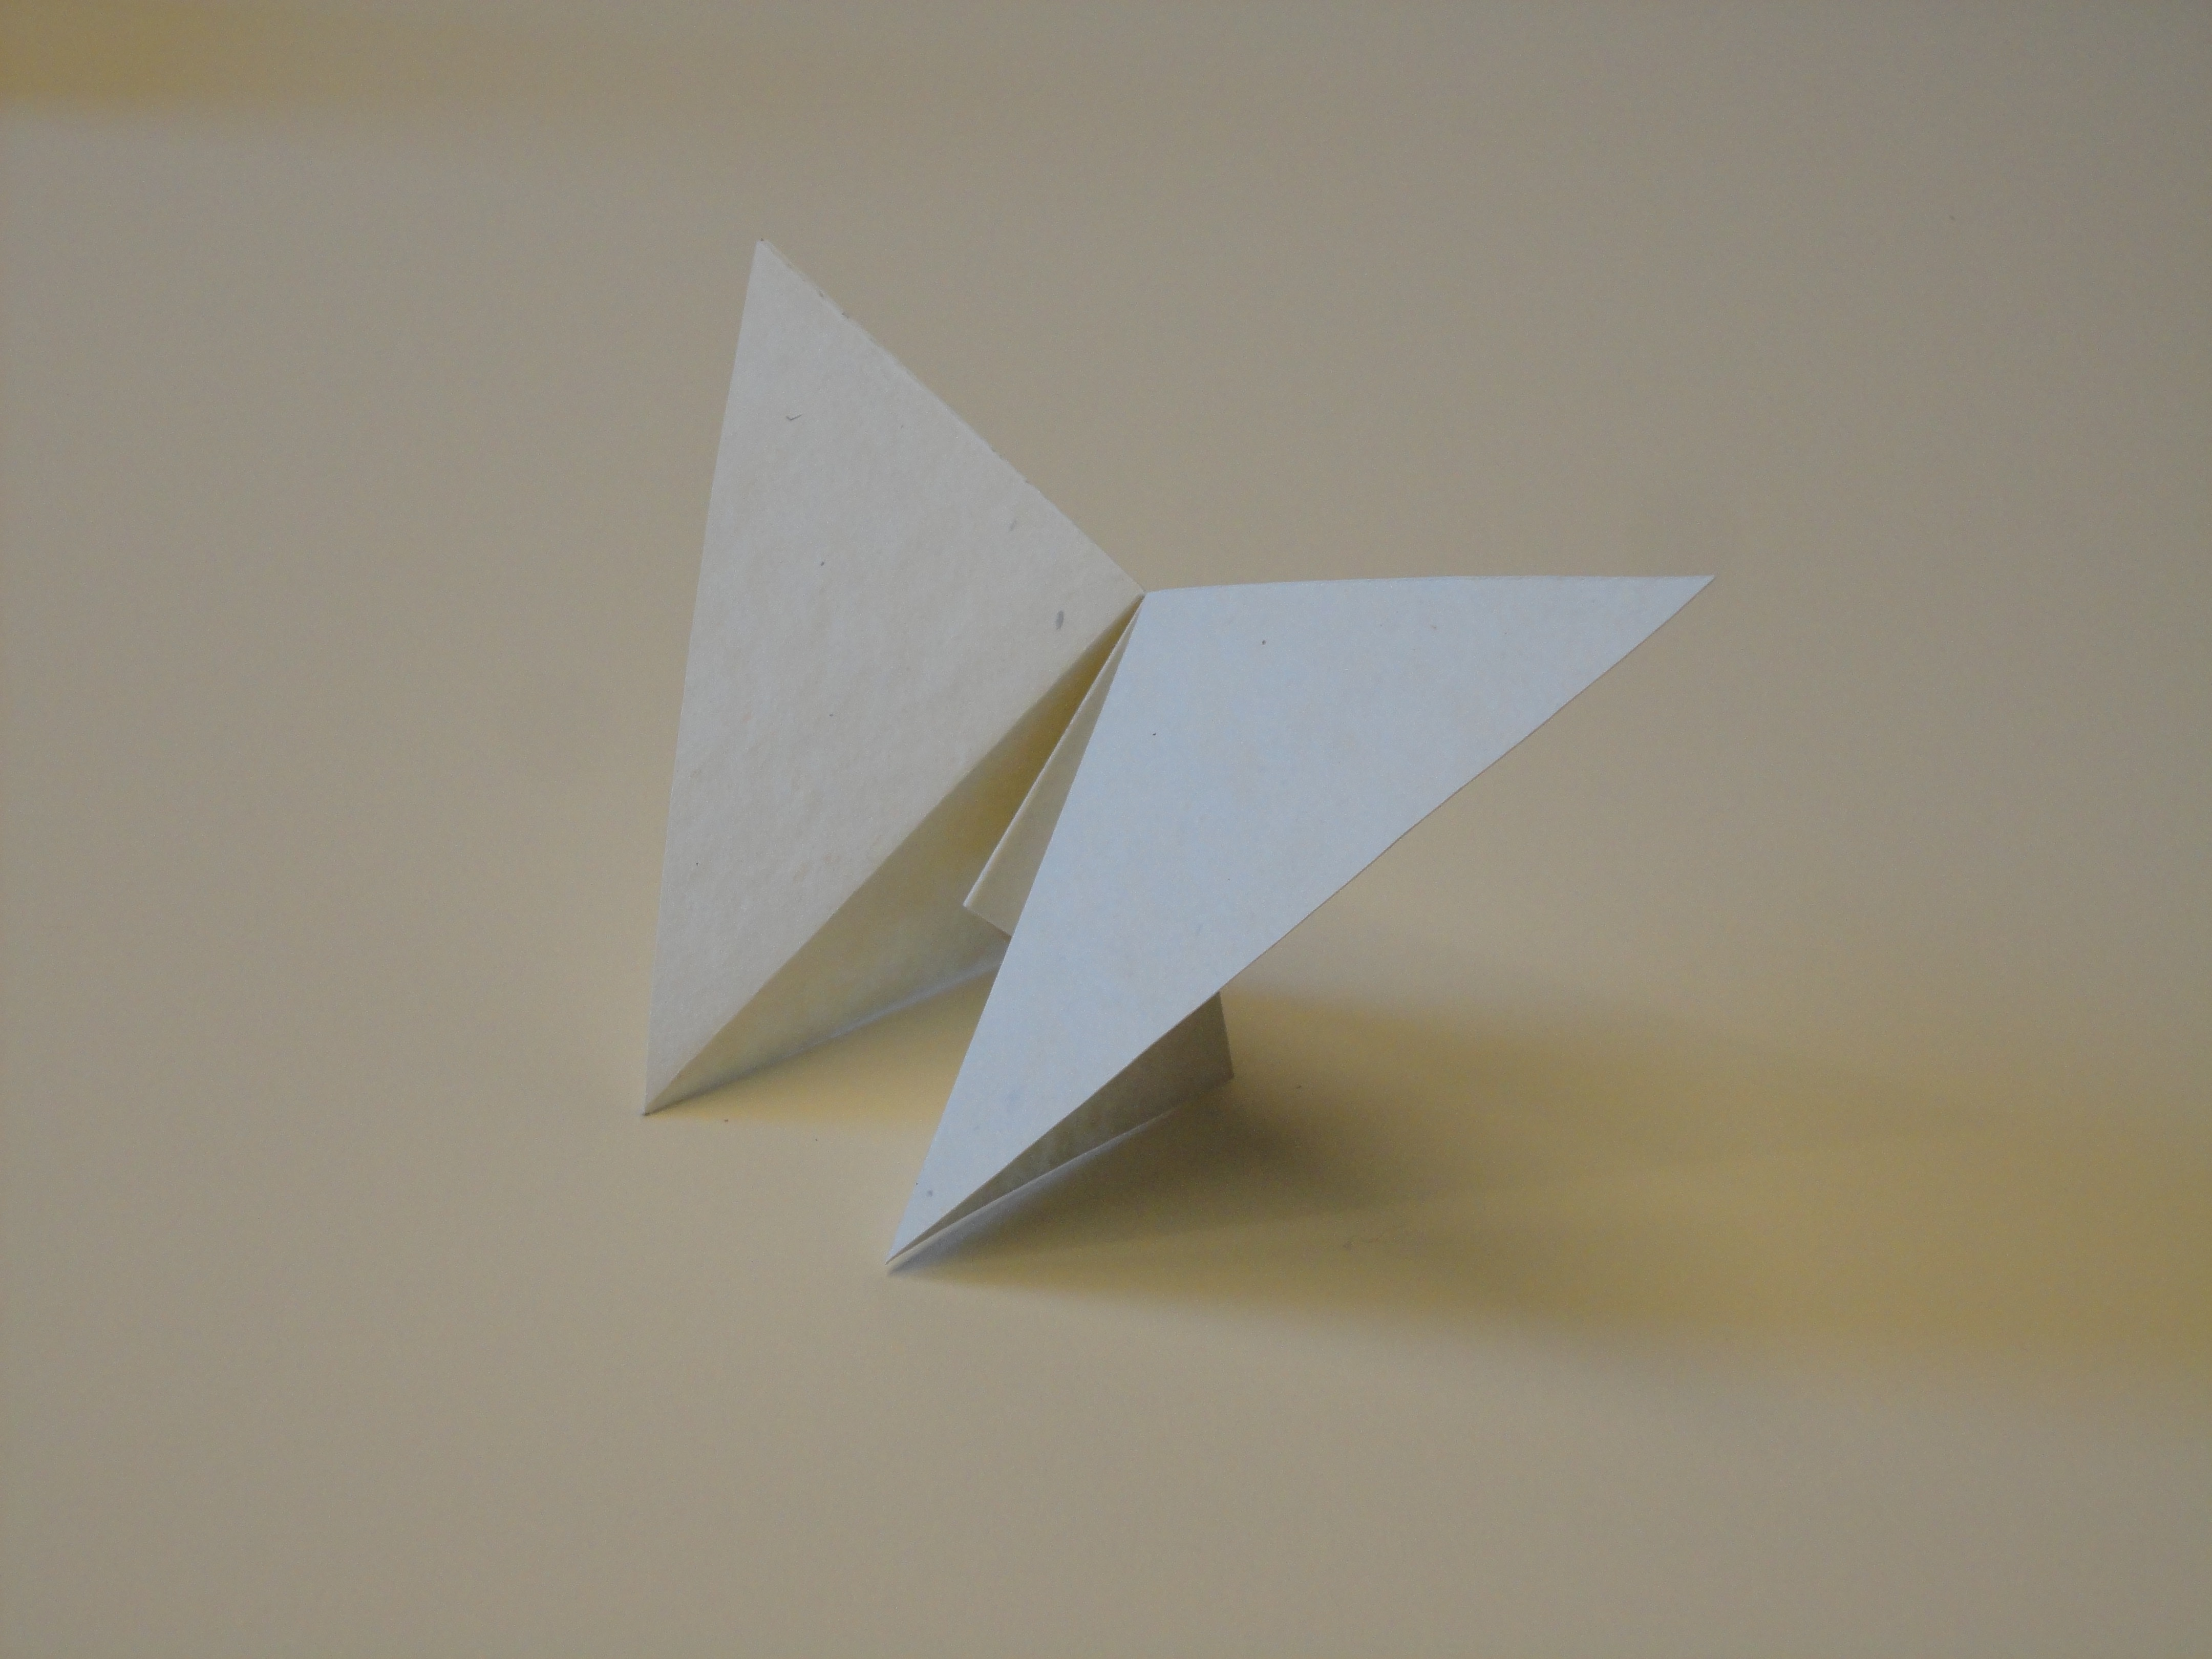 A prototype of one of the hand folded structures.